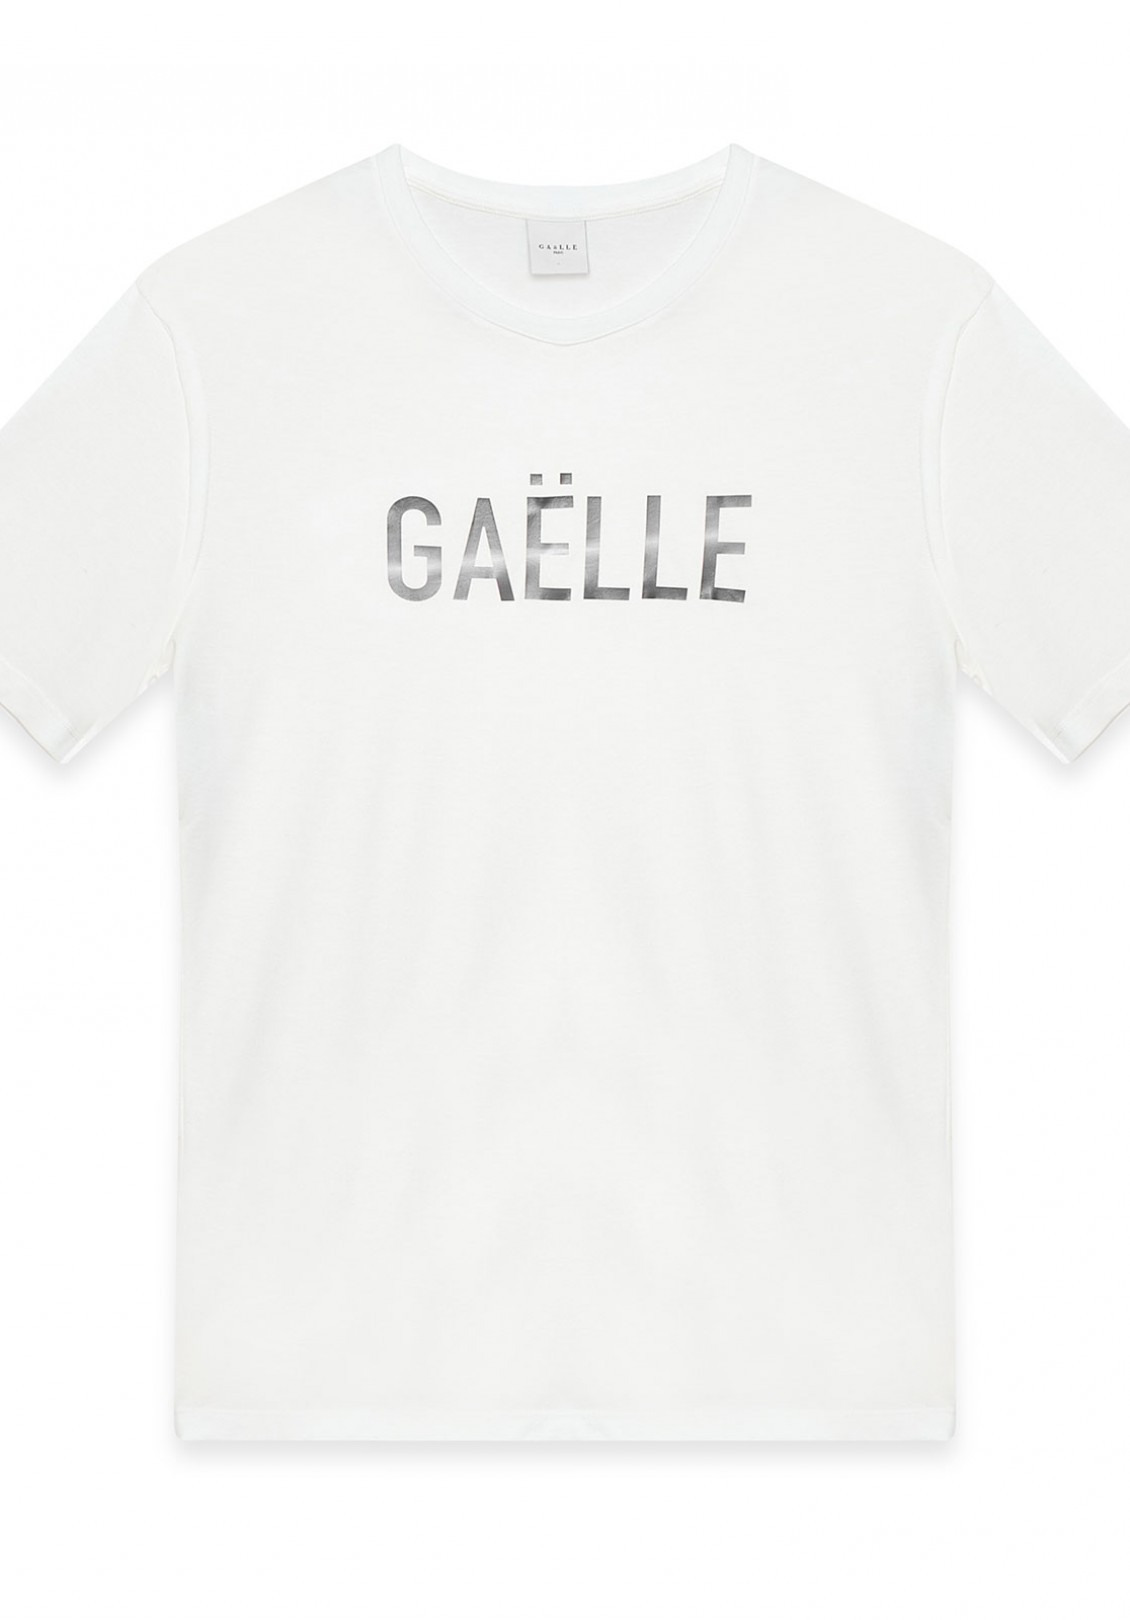 T-SHIRT - GBU3182 - GAELLE PARIS